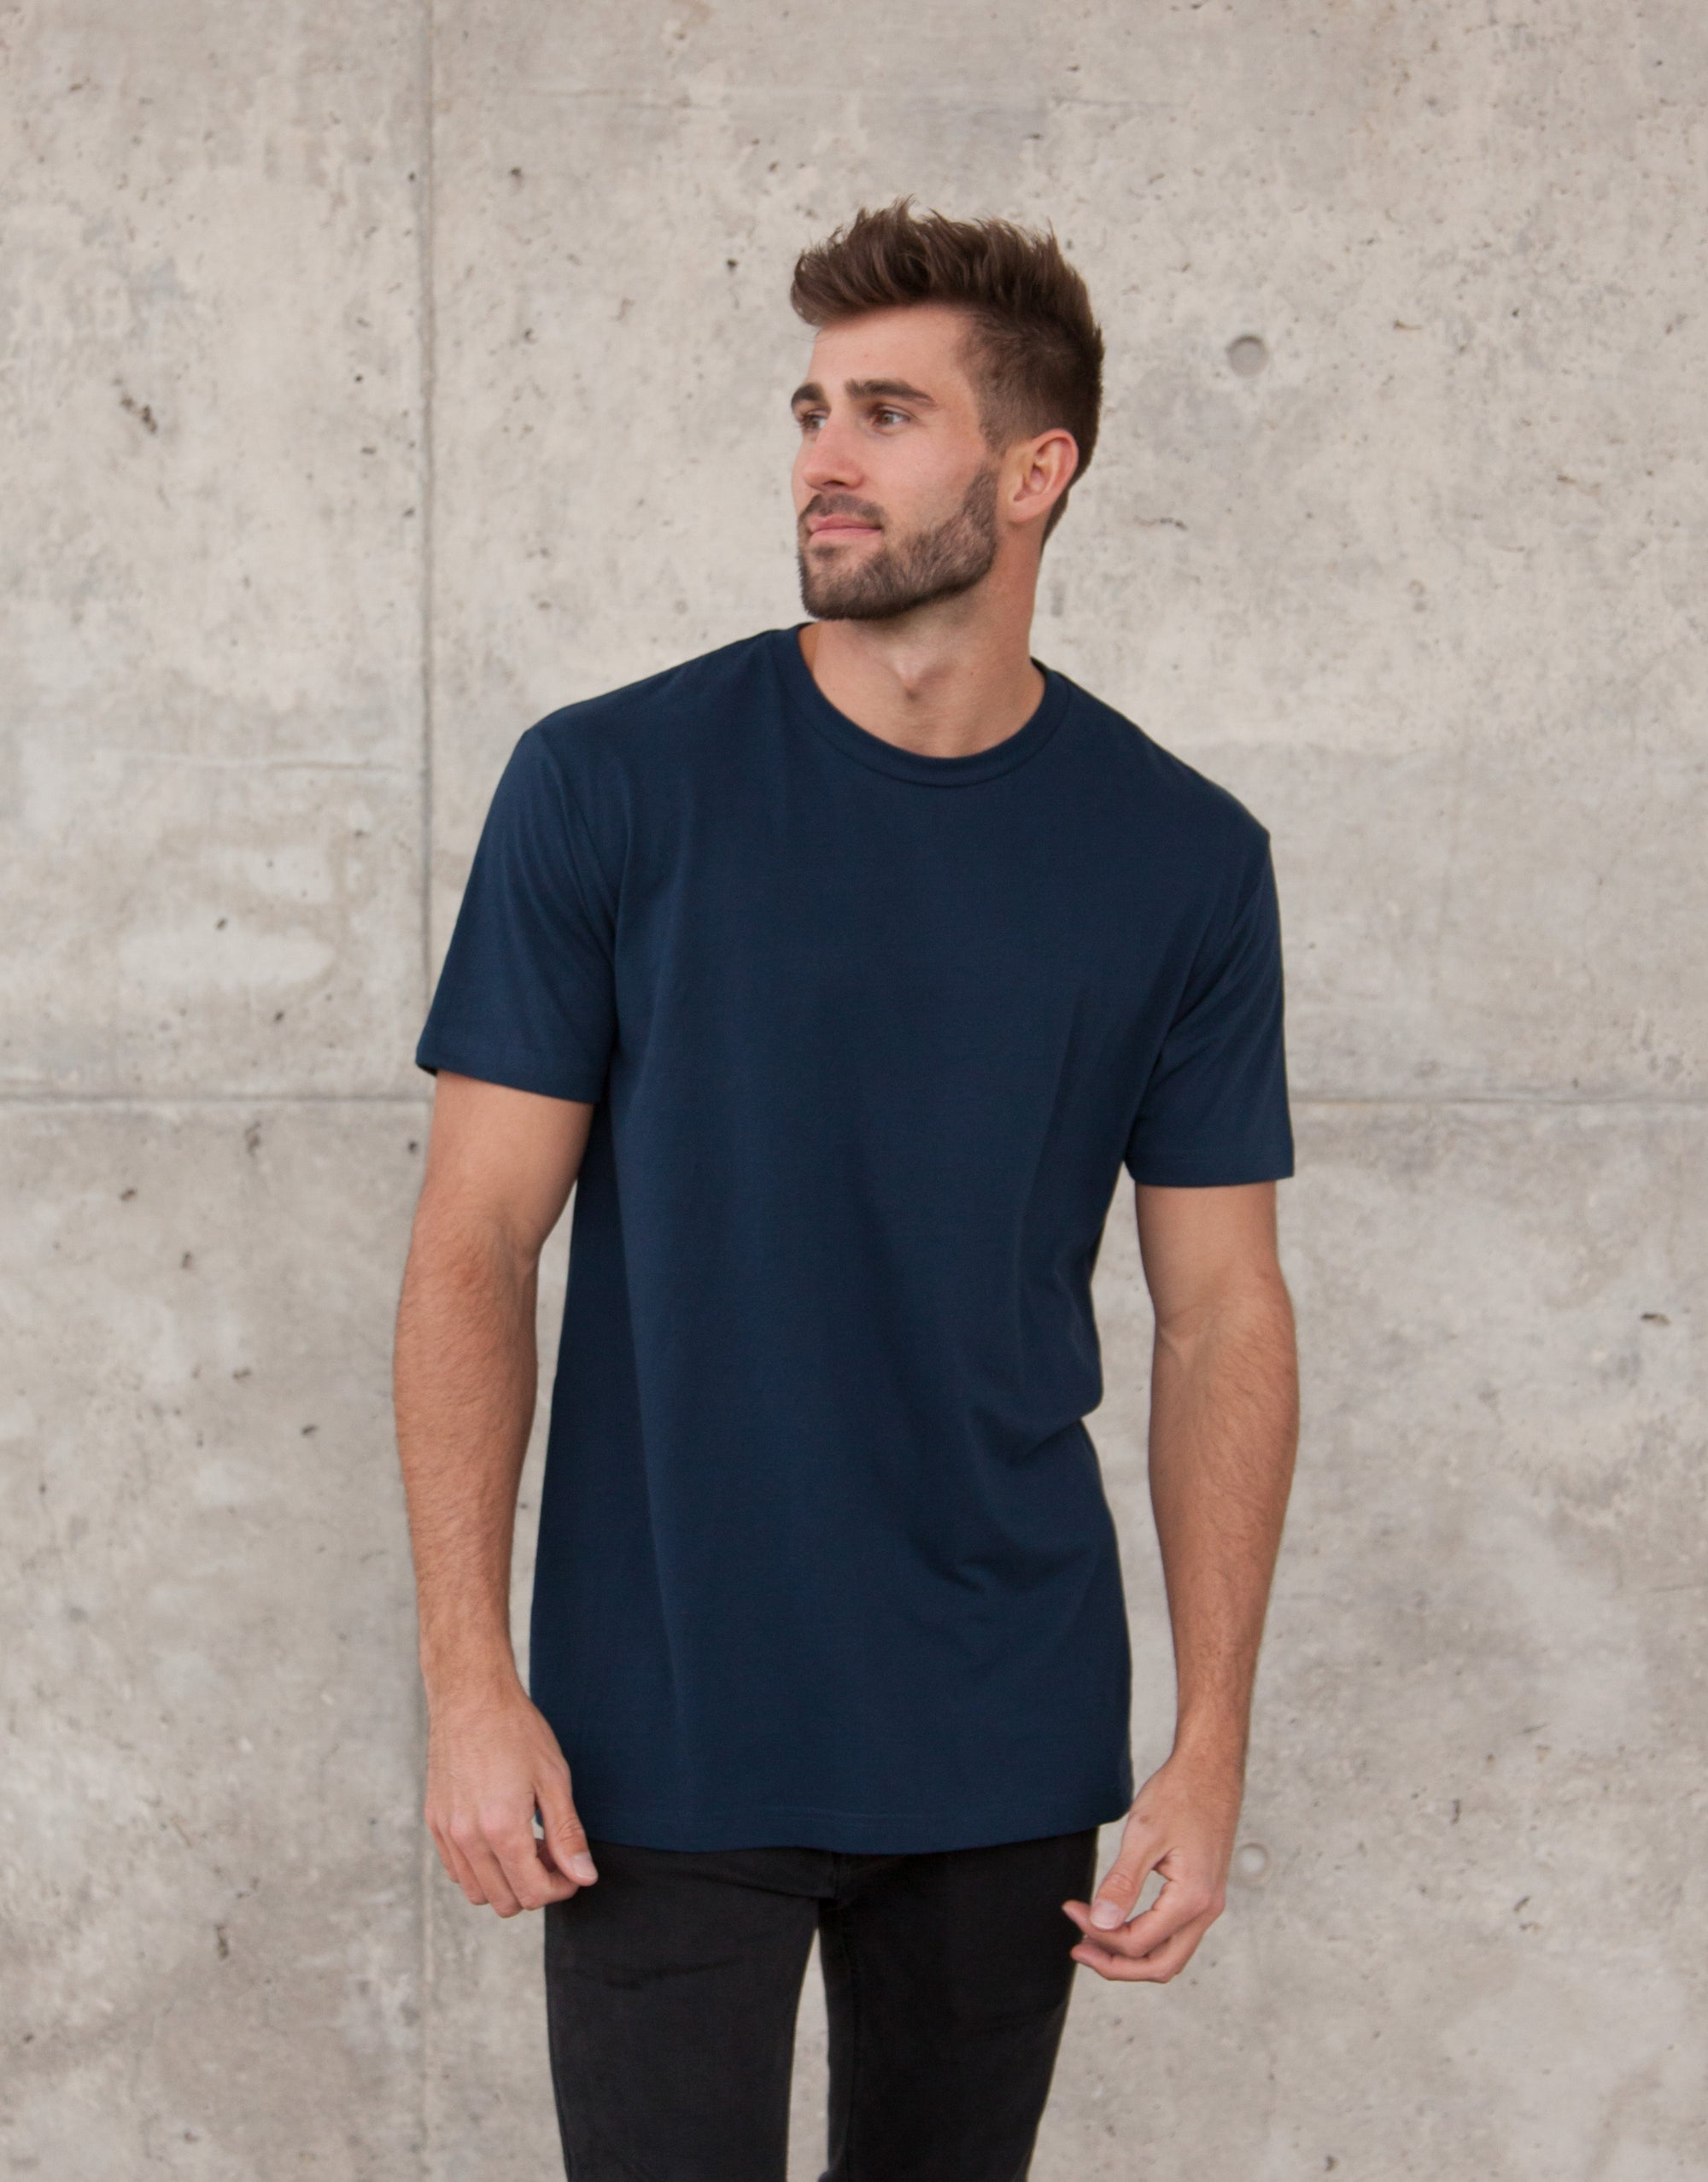 Mago Navy blue short sleeve t-shirt